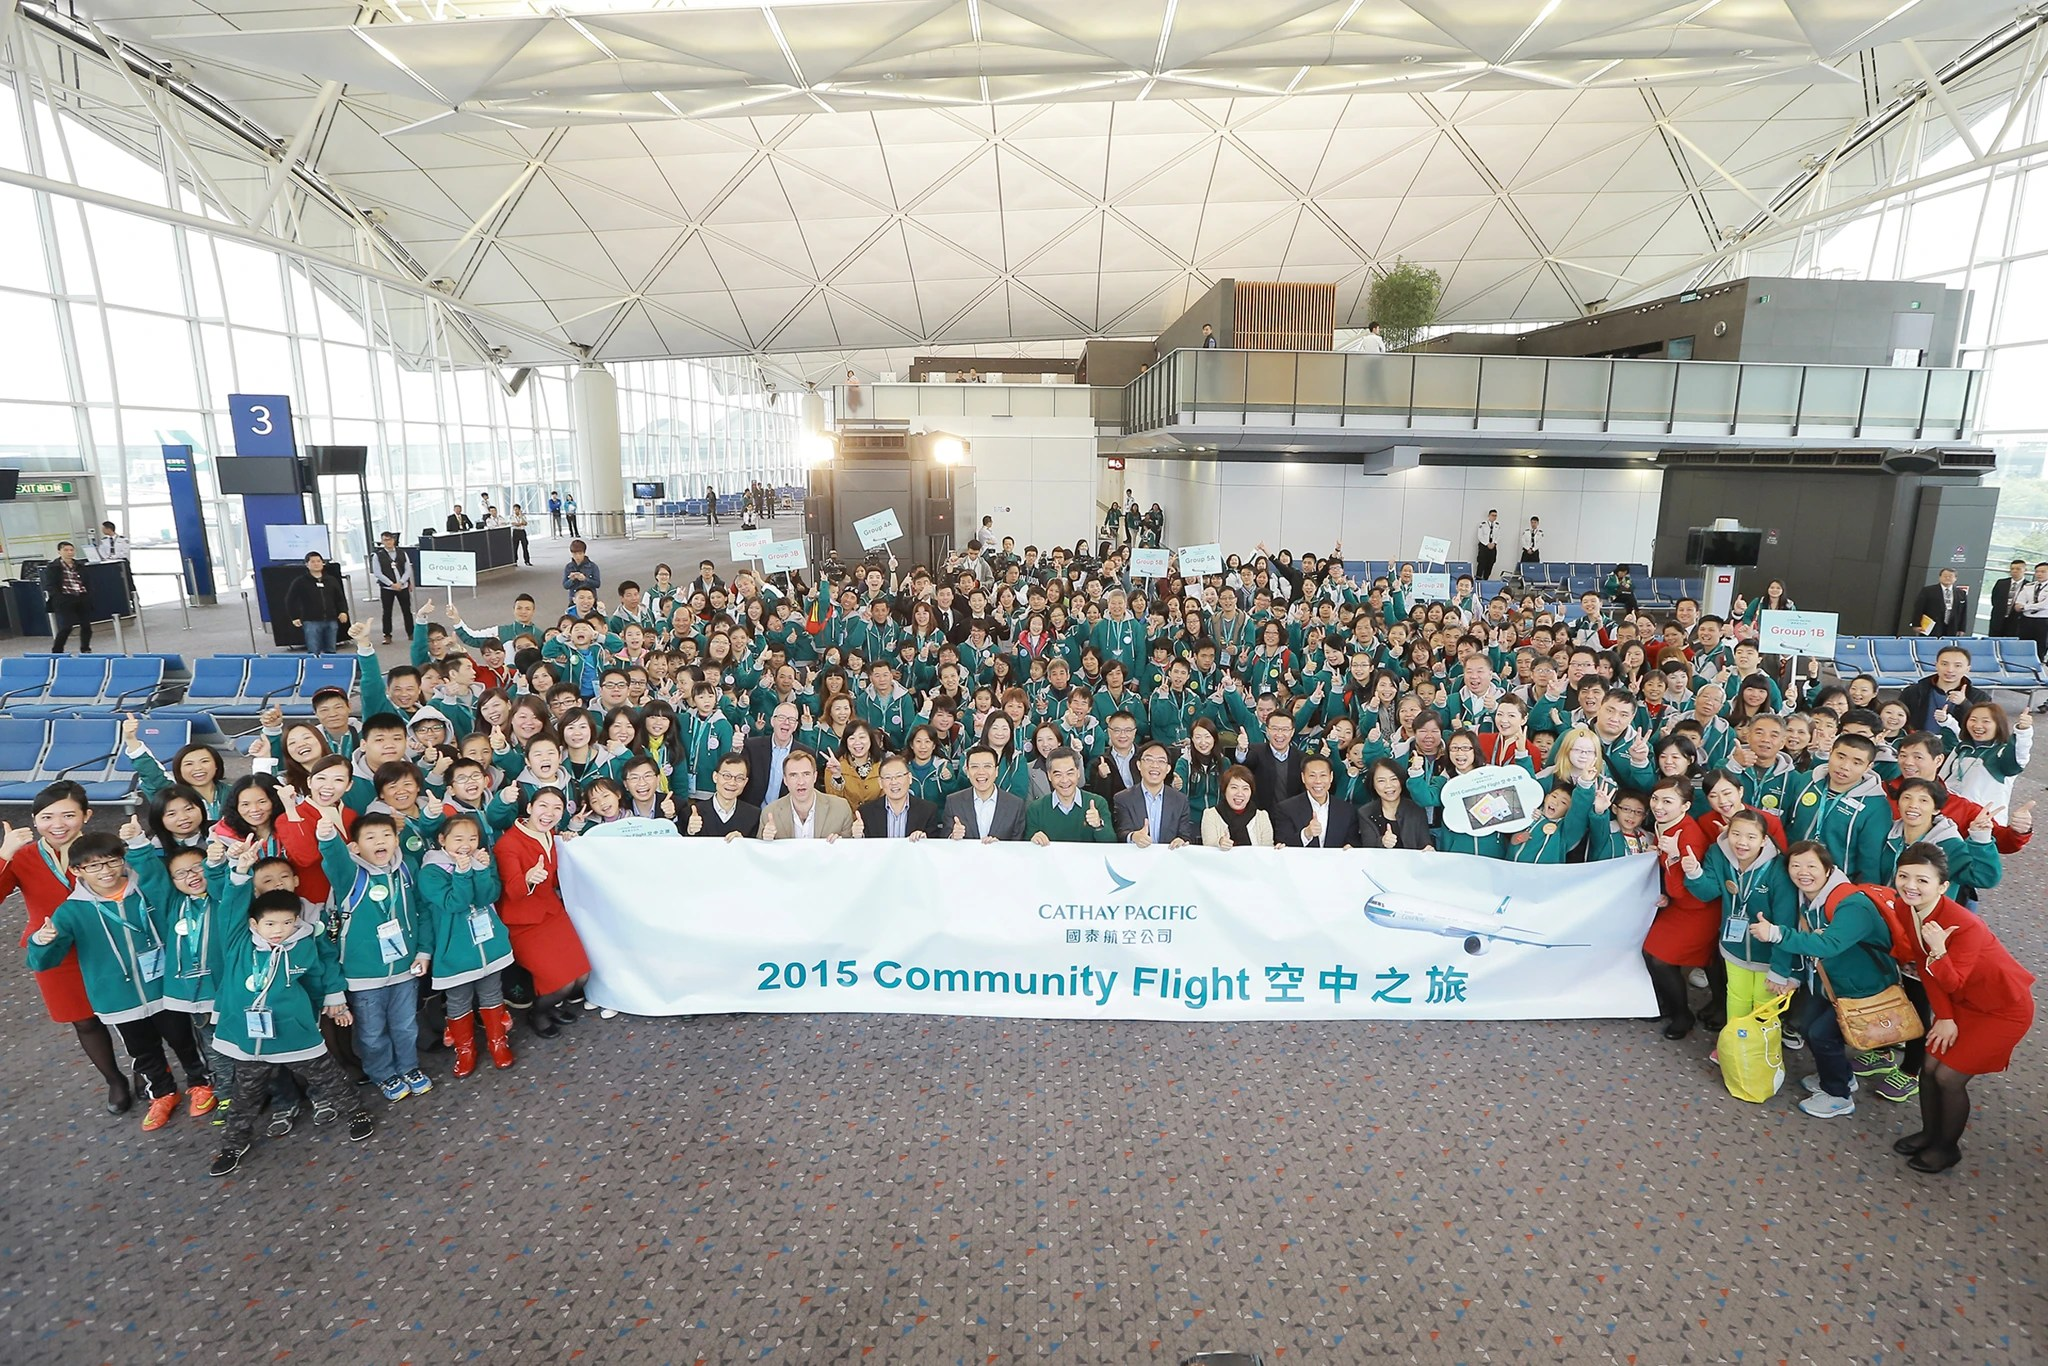 Cathay Pacific Community Flight Reinforces Family Solidarity - 200 people from less-advantaged families embark on a special flight - Cathay Pacific